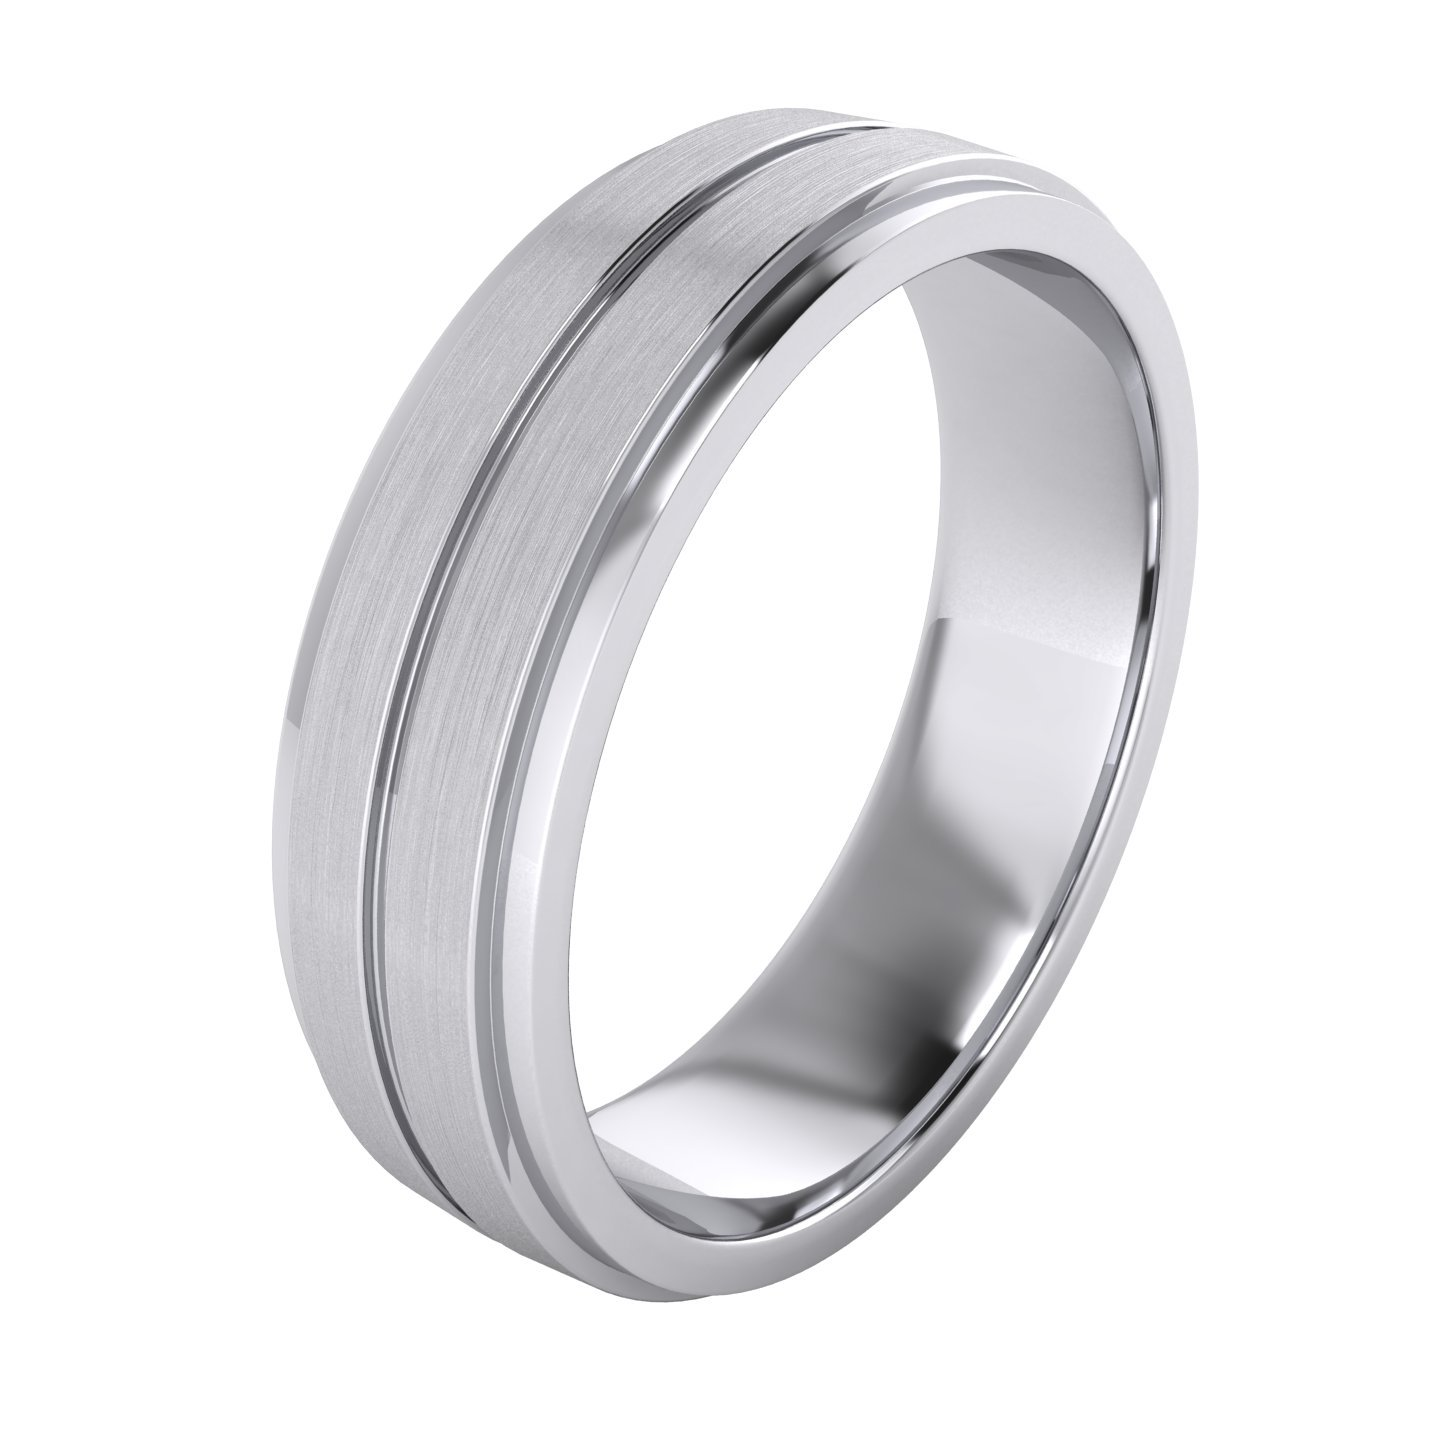 Heavy Solid Sterling Silver 6mm Unisex Wedding Band Comfort Fit Ring Brushed Raised Center Grooved Polished Sides (11.5)